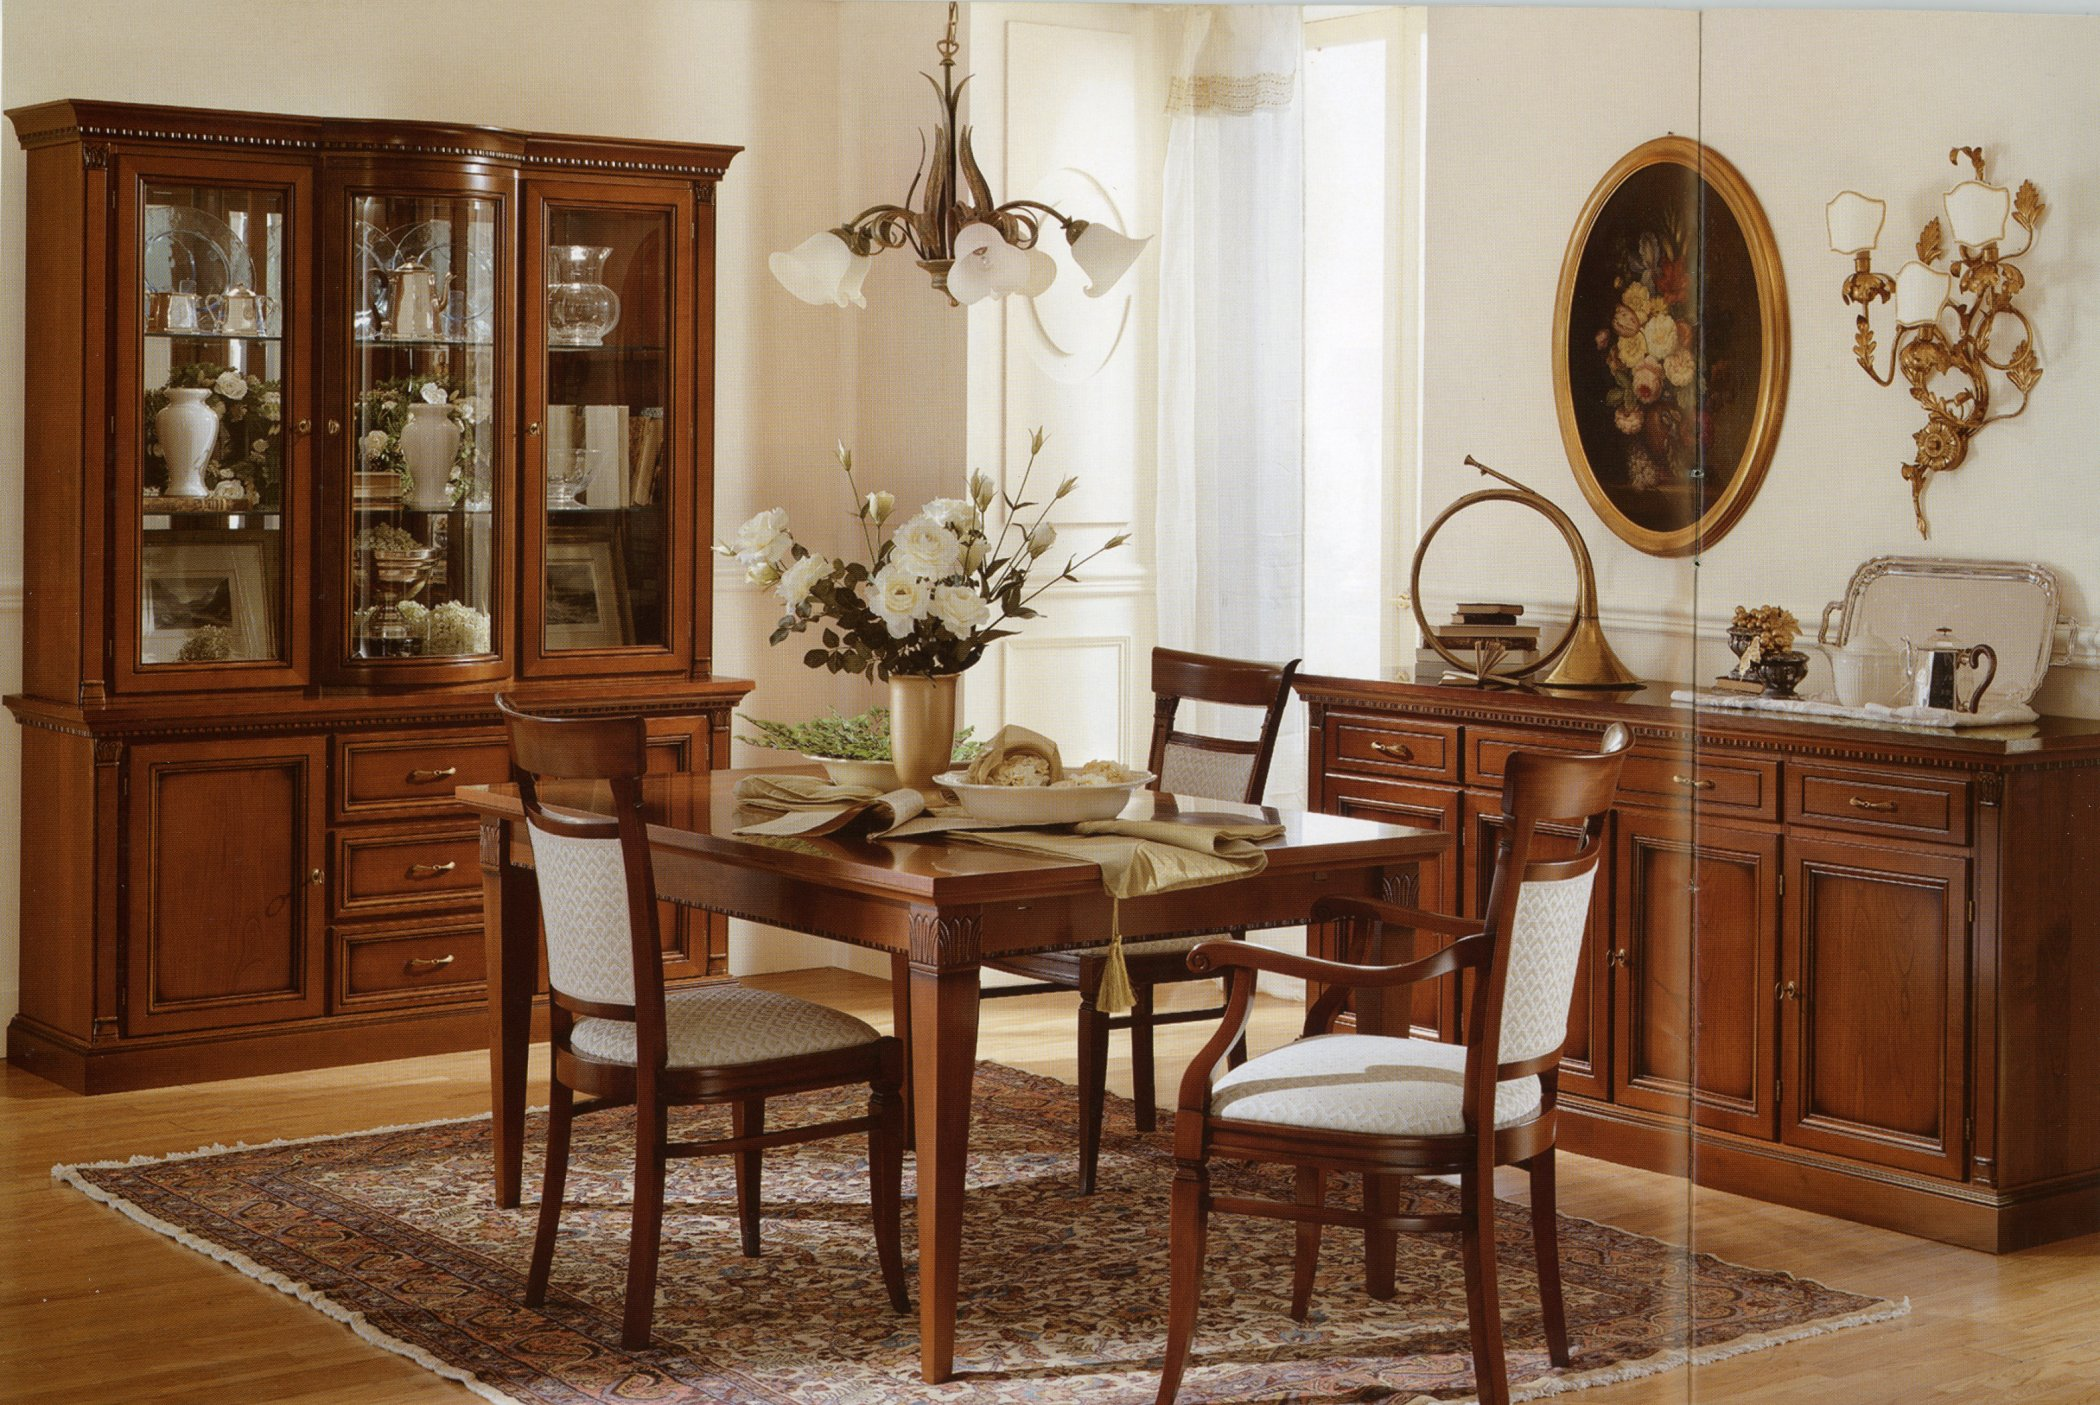 accessories for dining room table ideas | homesfeed Dining Room Seating Ideas